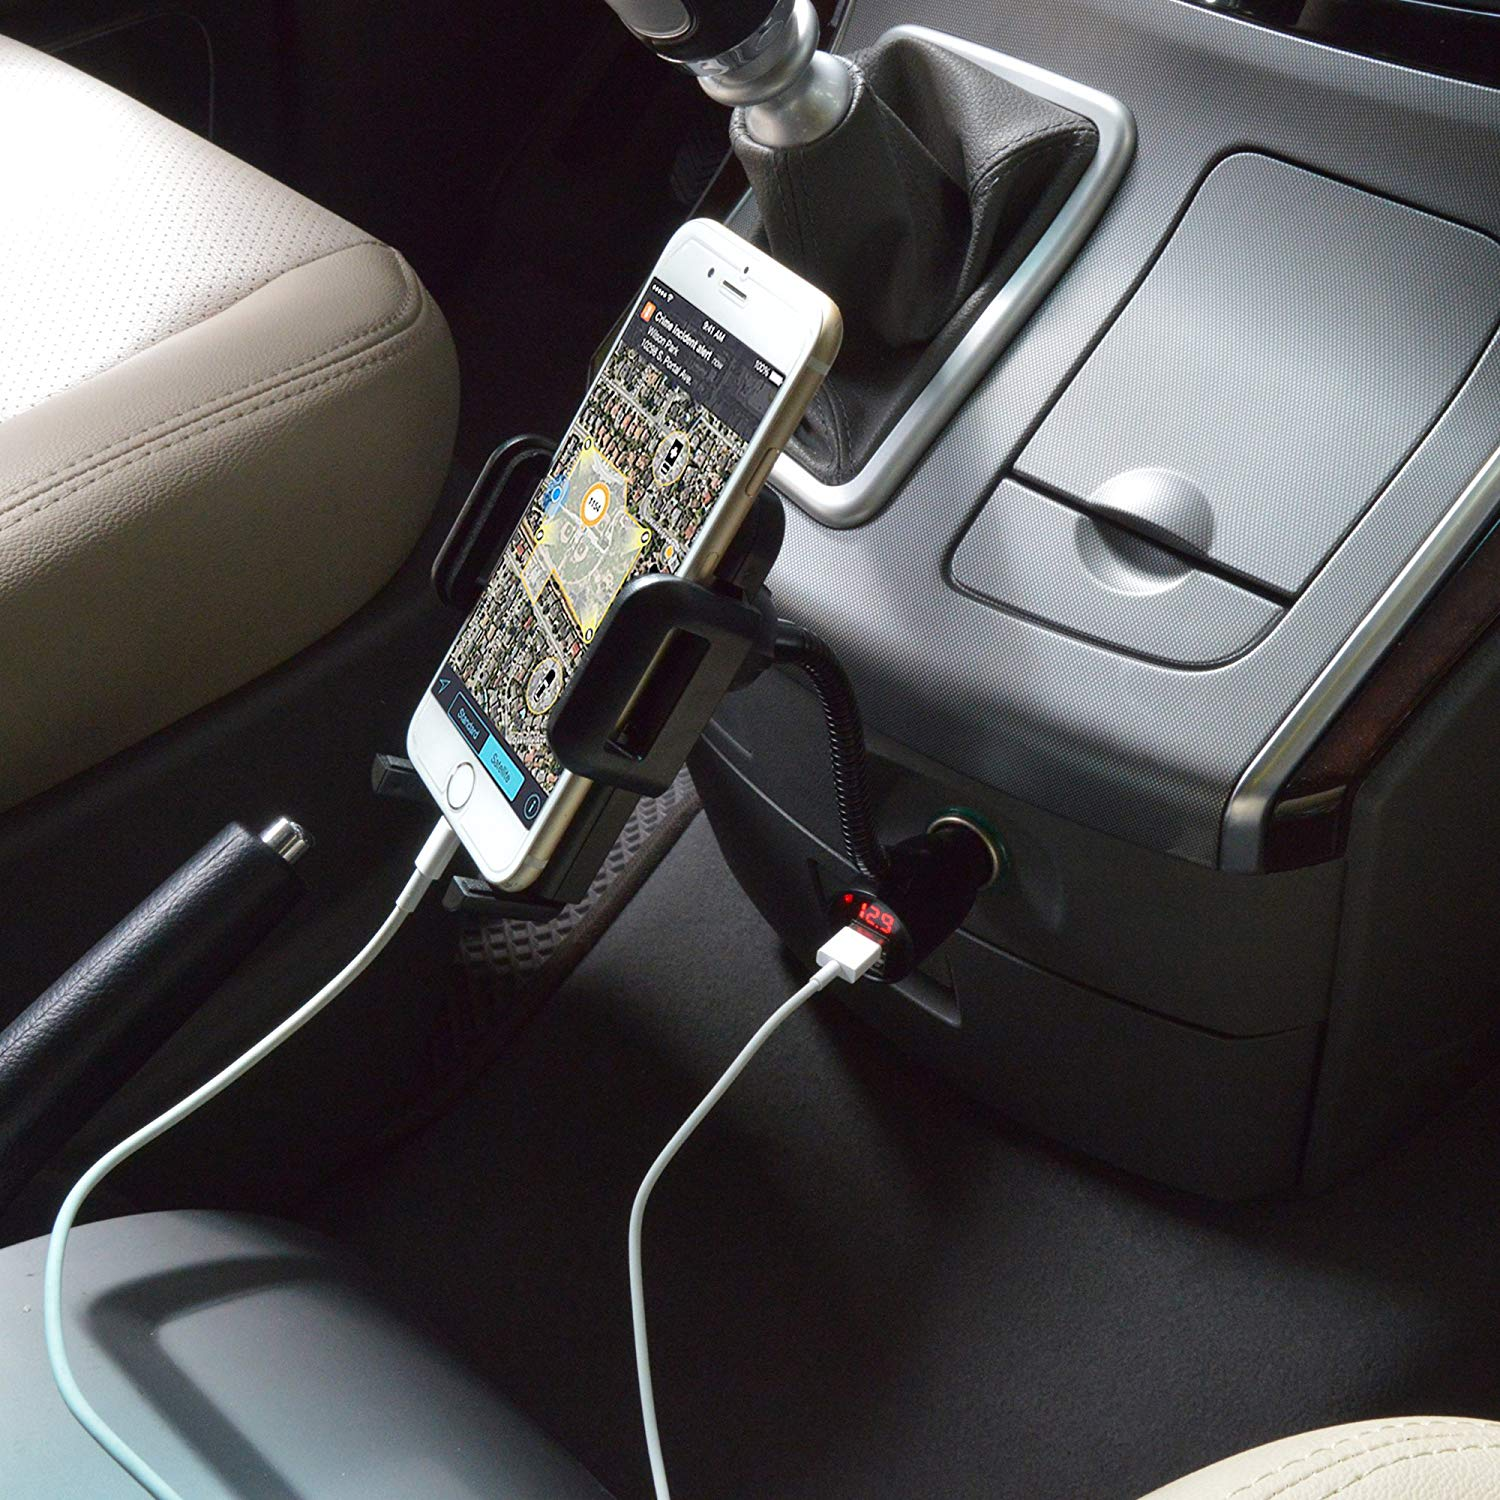 f8c91130788383 Top 10 Phone Holder For Cars in 2019 - All Top Ten Reviews